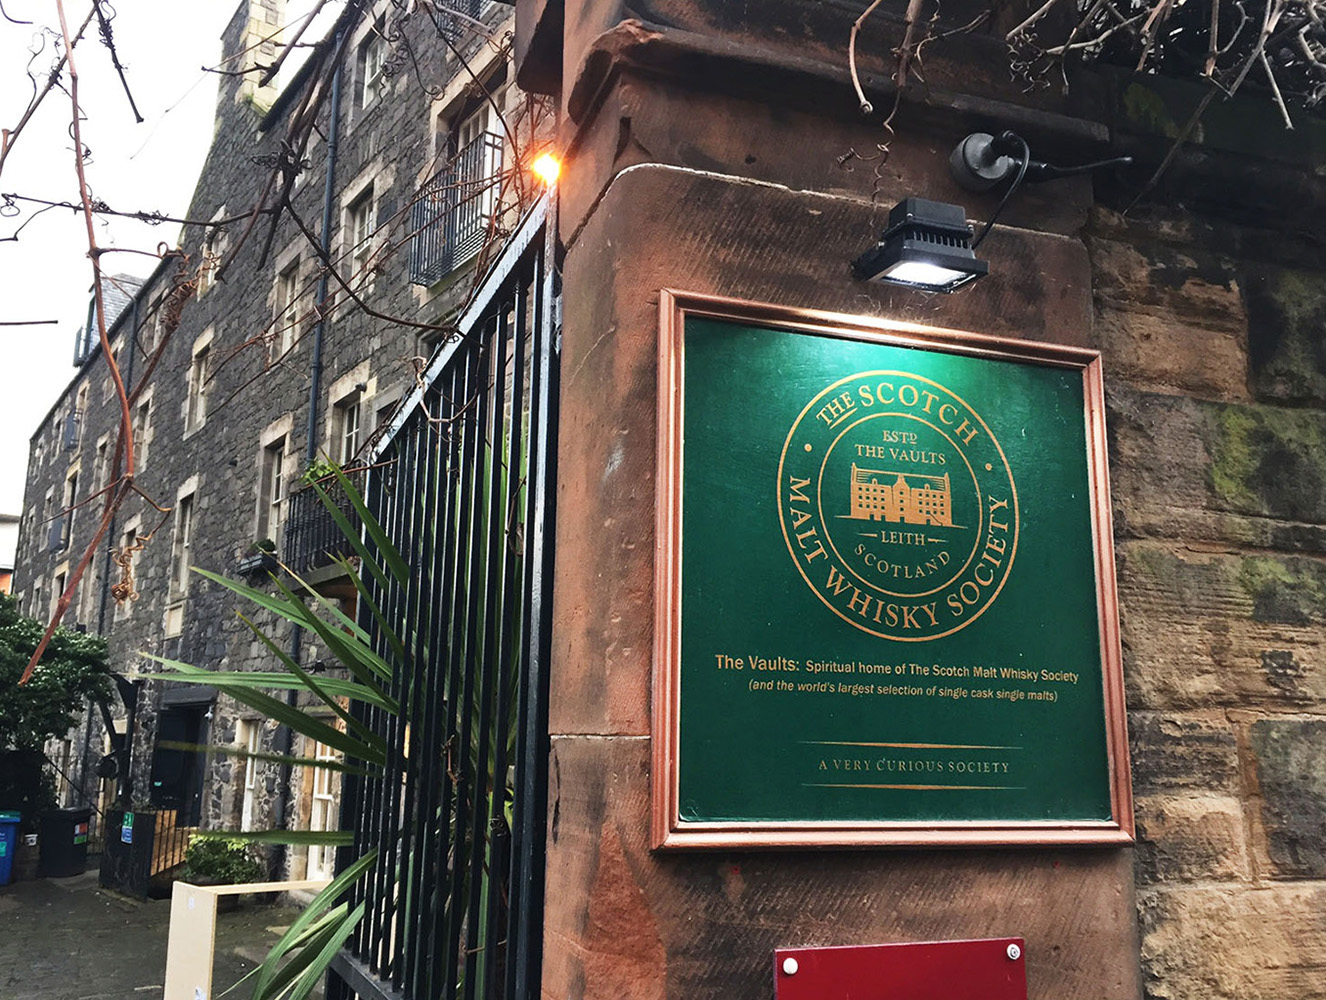 Edinburgh's Whisky District - The European wine industry was ravaged by a vine weevil called phylloxera, recently imported from the USA. Wine and brandy production crashed as producers fought to cure their vines of this pest. Whisky makers moved in to fill the void and the warehouses of Leith were soon filled with barrels of ageing spirit.'The Vaults' in Leith, home to the wonderful Scotch Malt Whisky Society, was originally a wine warehouse dating back to the 18th century.